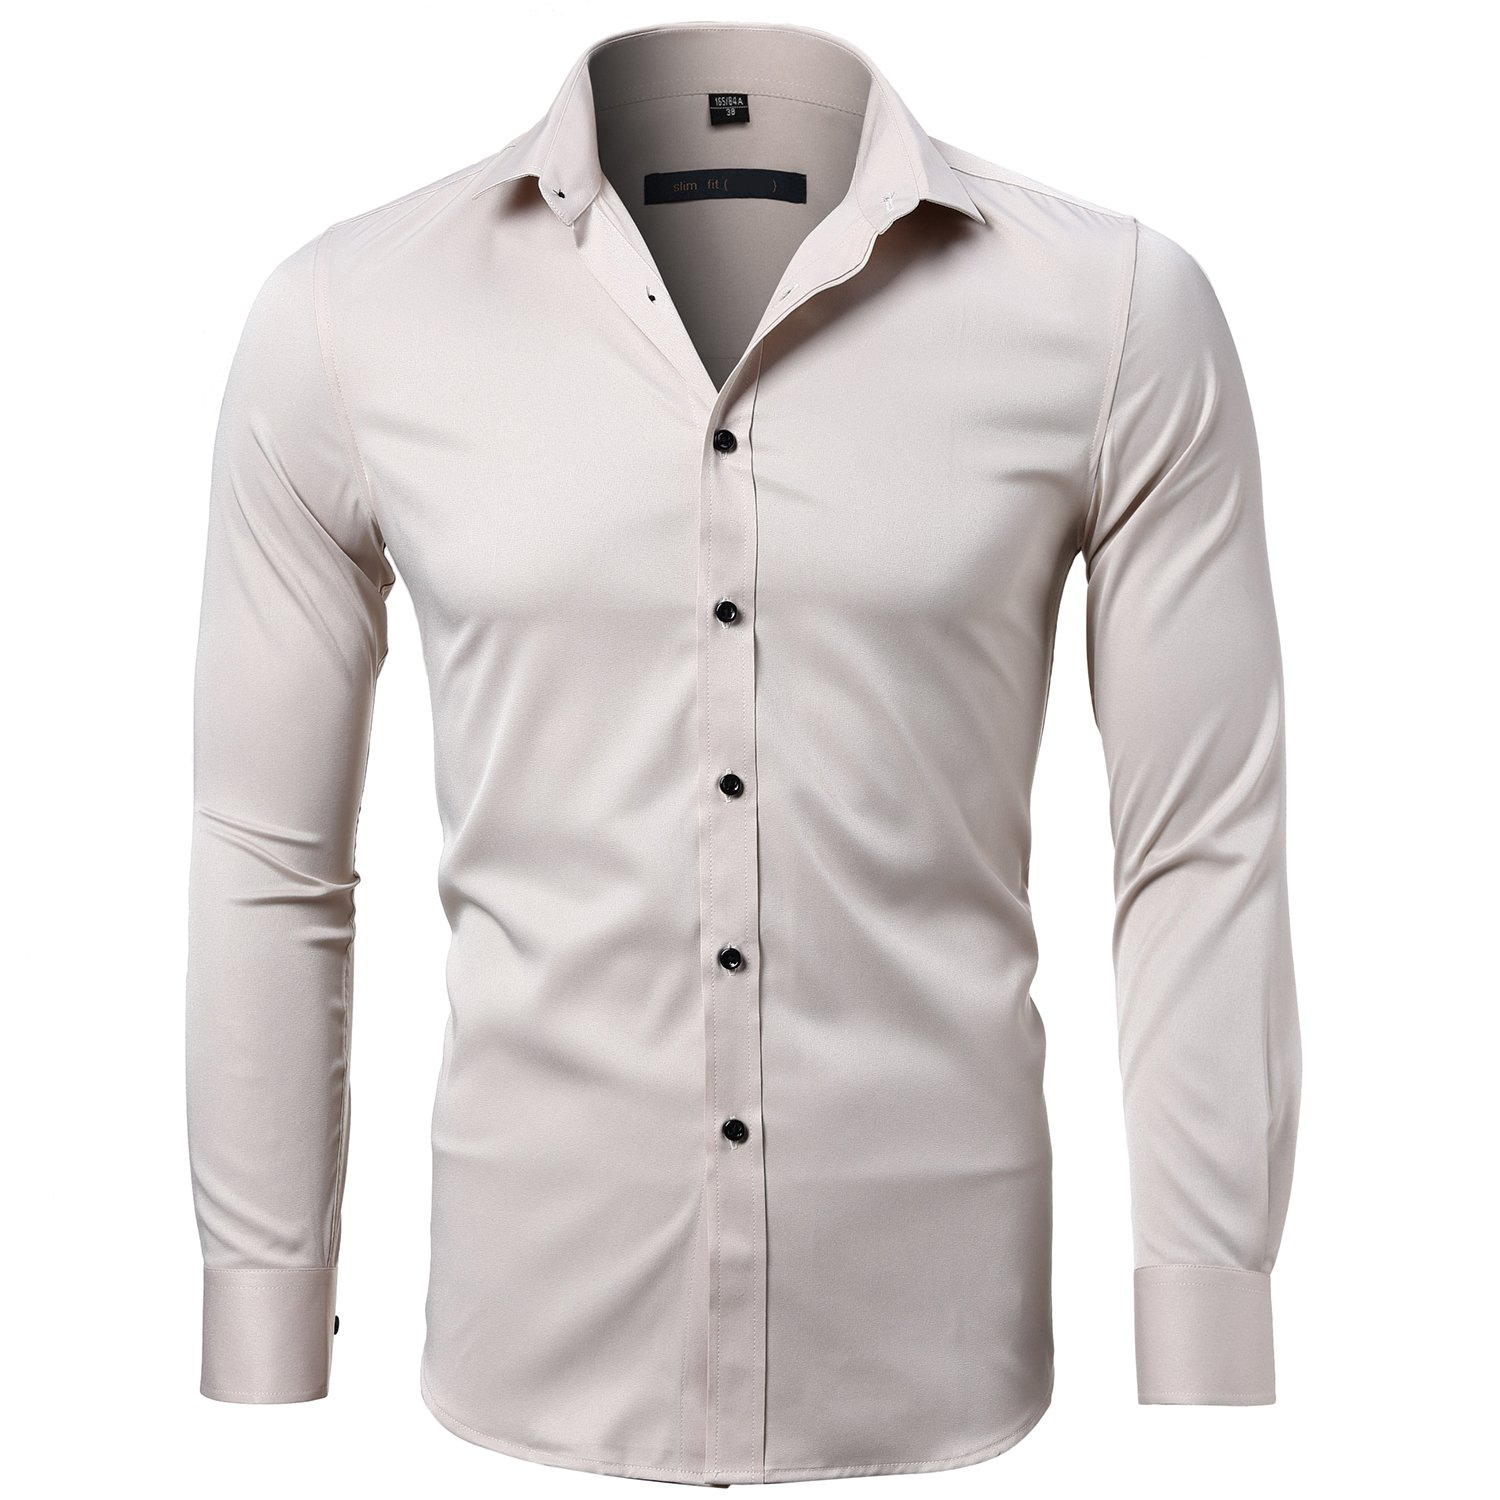 95b3a8ce Harrms Men's Dress Shirts Long Sleeve Formal Shirts for Men Bamboo Fiber  Slim Fit Solid Casual Button Down Shirts, Elastic,15 Colors